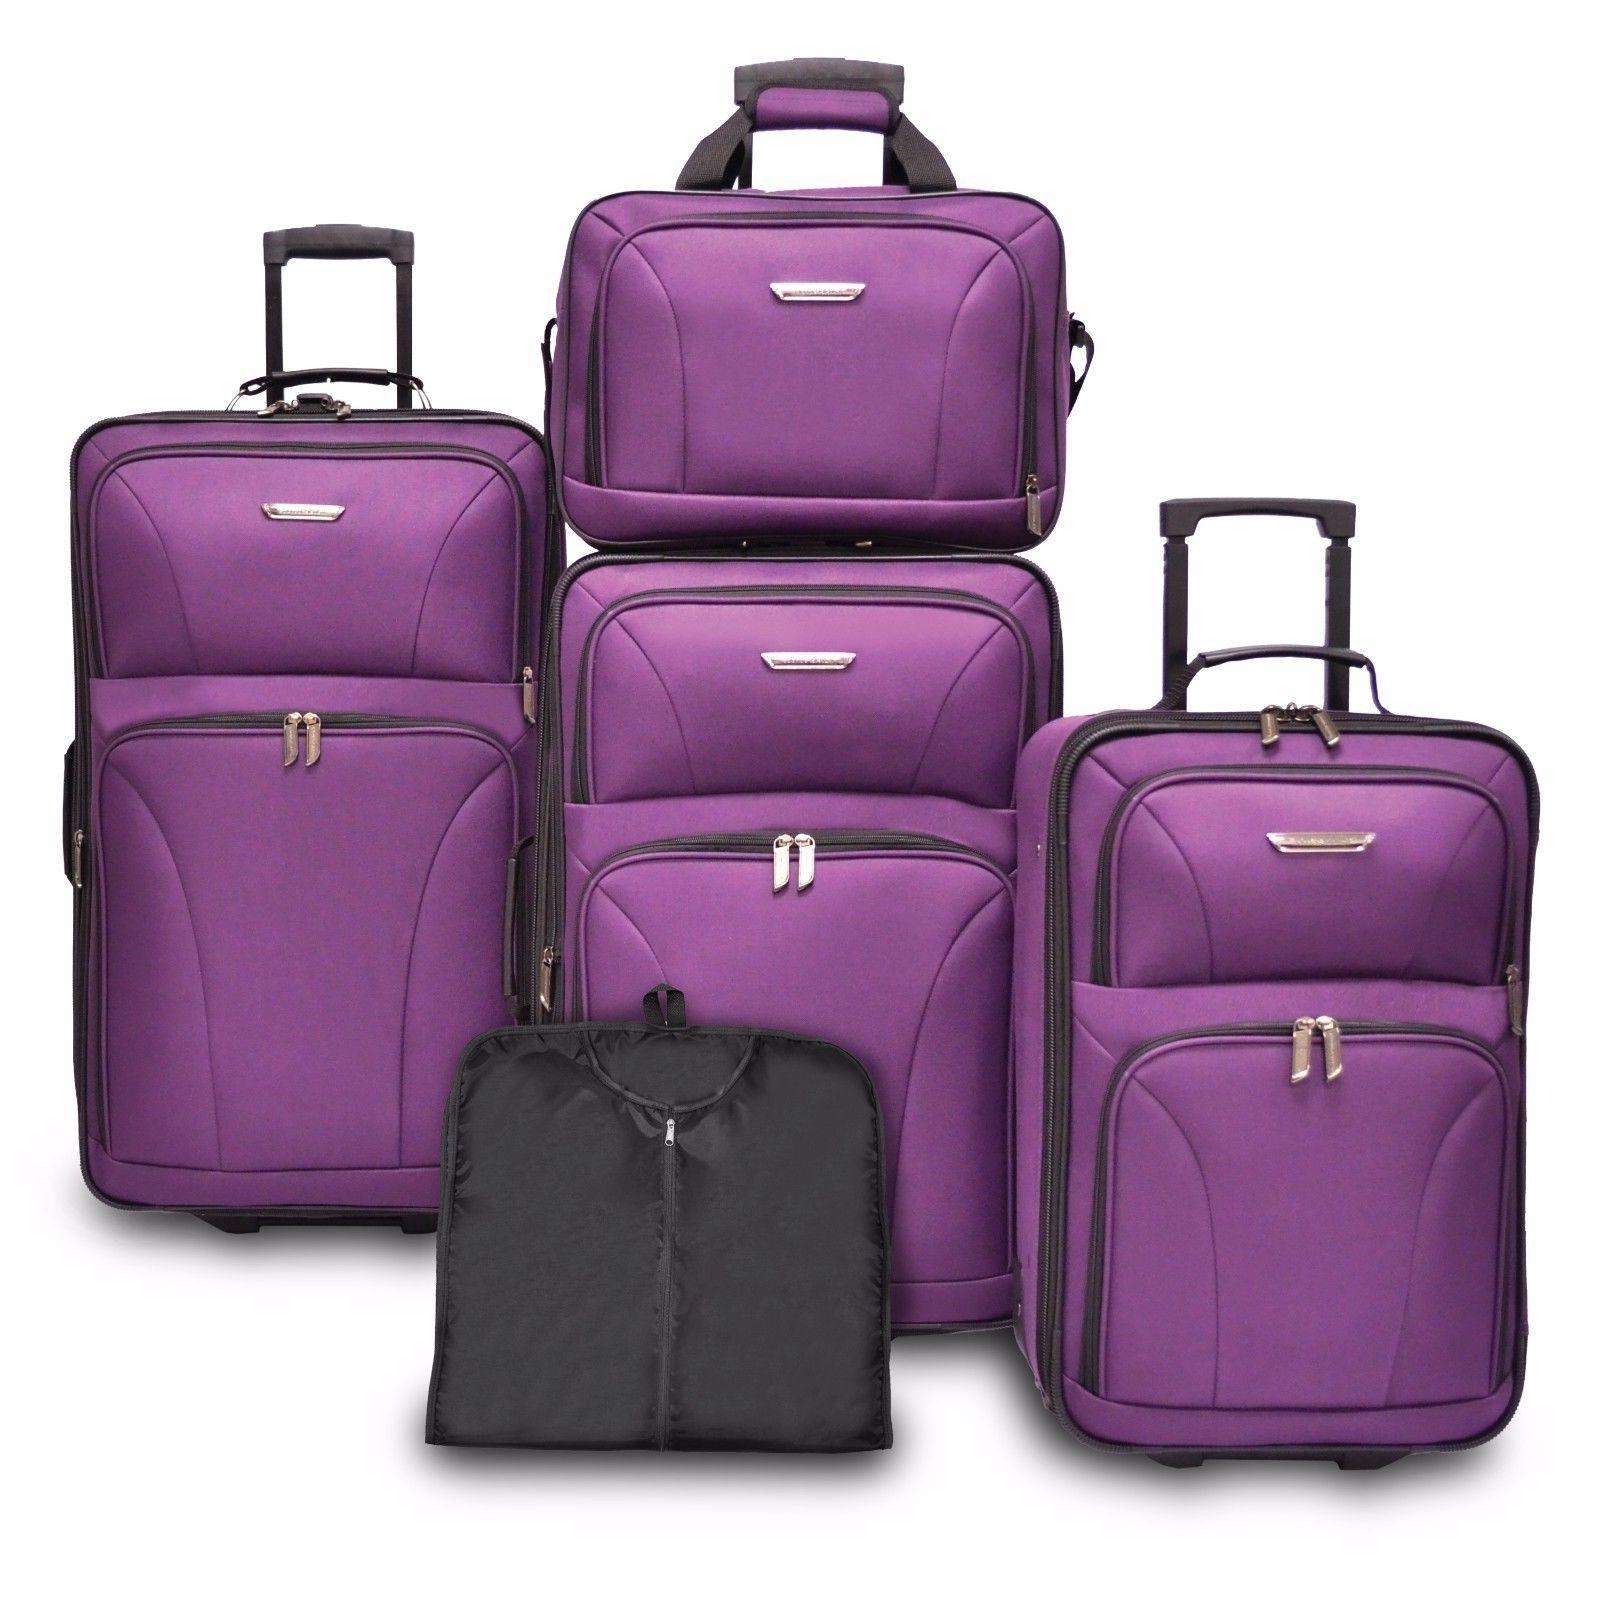 Traveler's Choice TC0835 Versatile 5-Piece Luggage Set - Pur